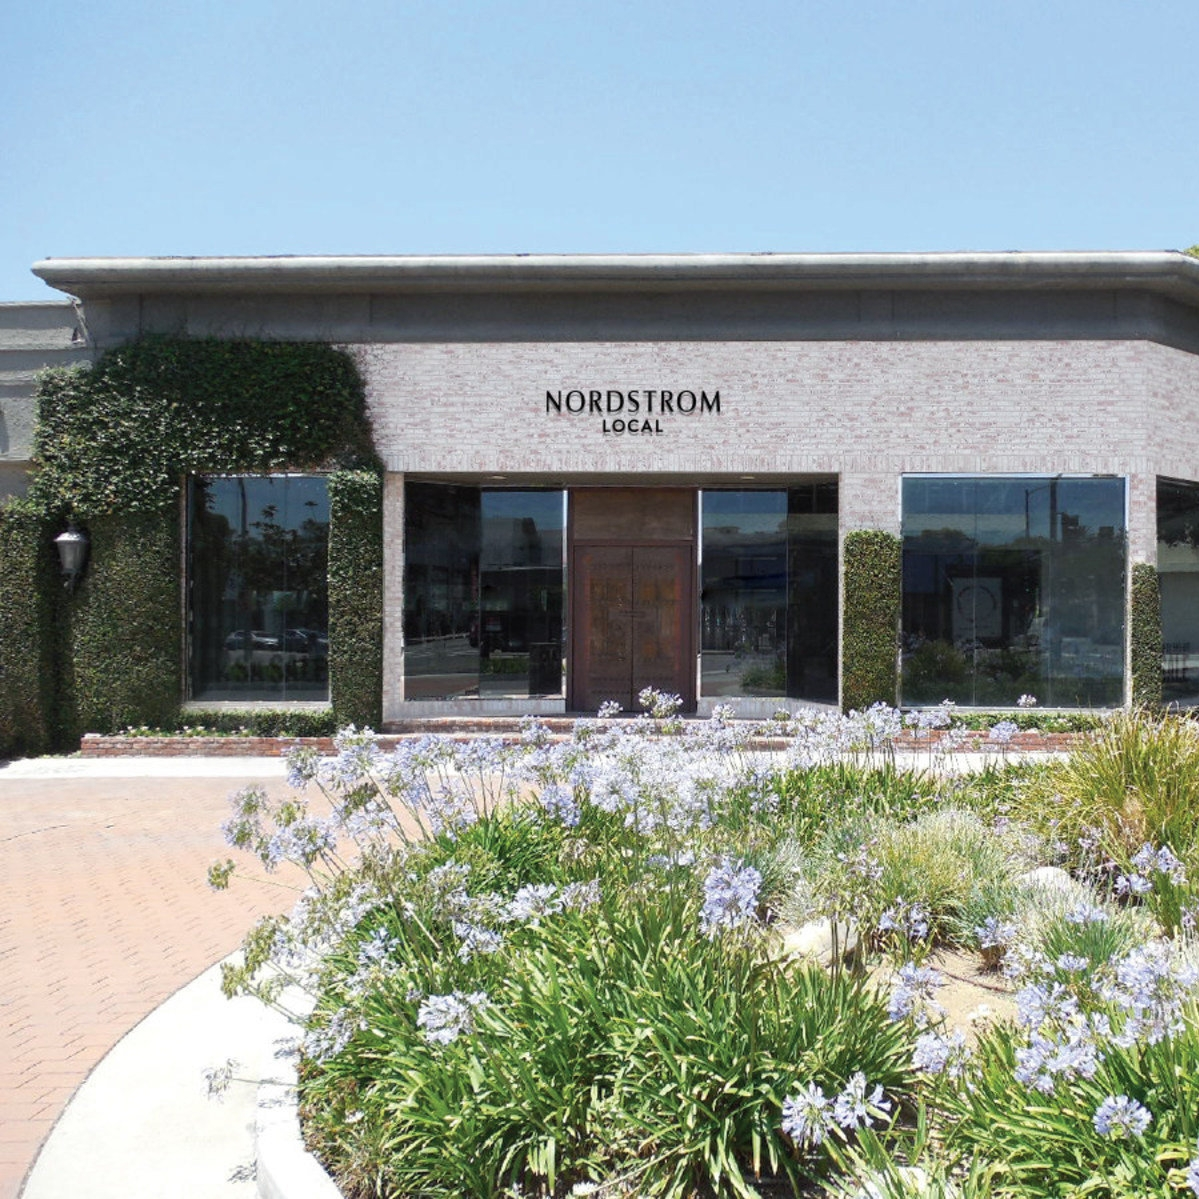 NORDSTROM'S NEW CONCEPT: A STORE THAT DOESN'T STOCK CLOTHES - It sounds like a bit of a head-scratcher: Department store giant Nordstrom says its new concept store won't actually have any clothing in stock.(via NPR)